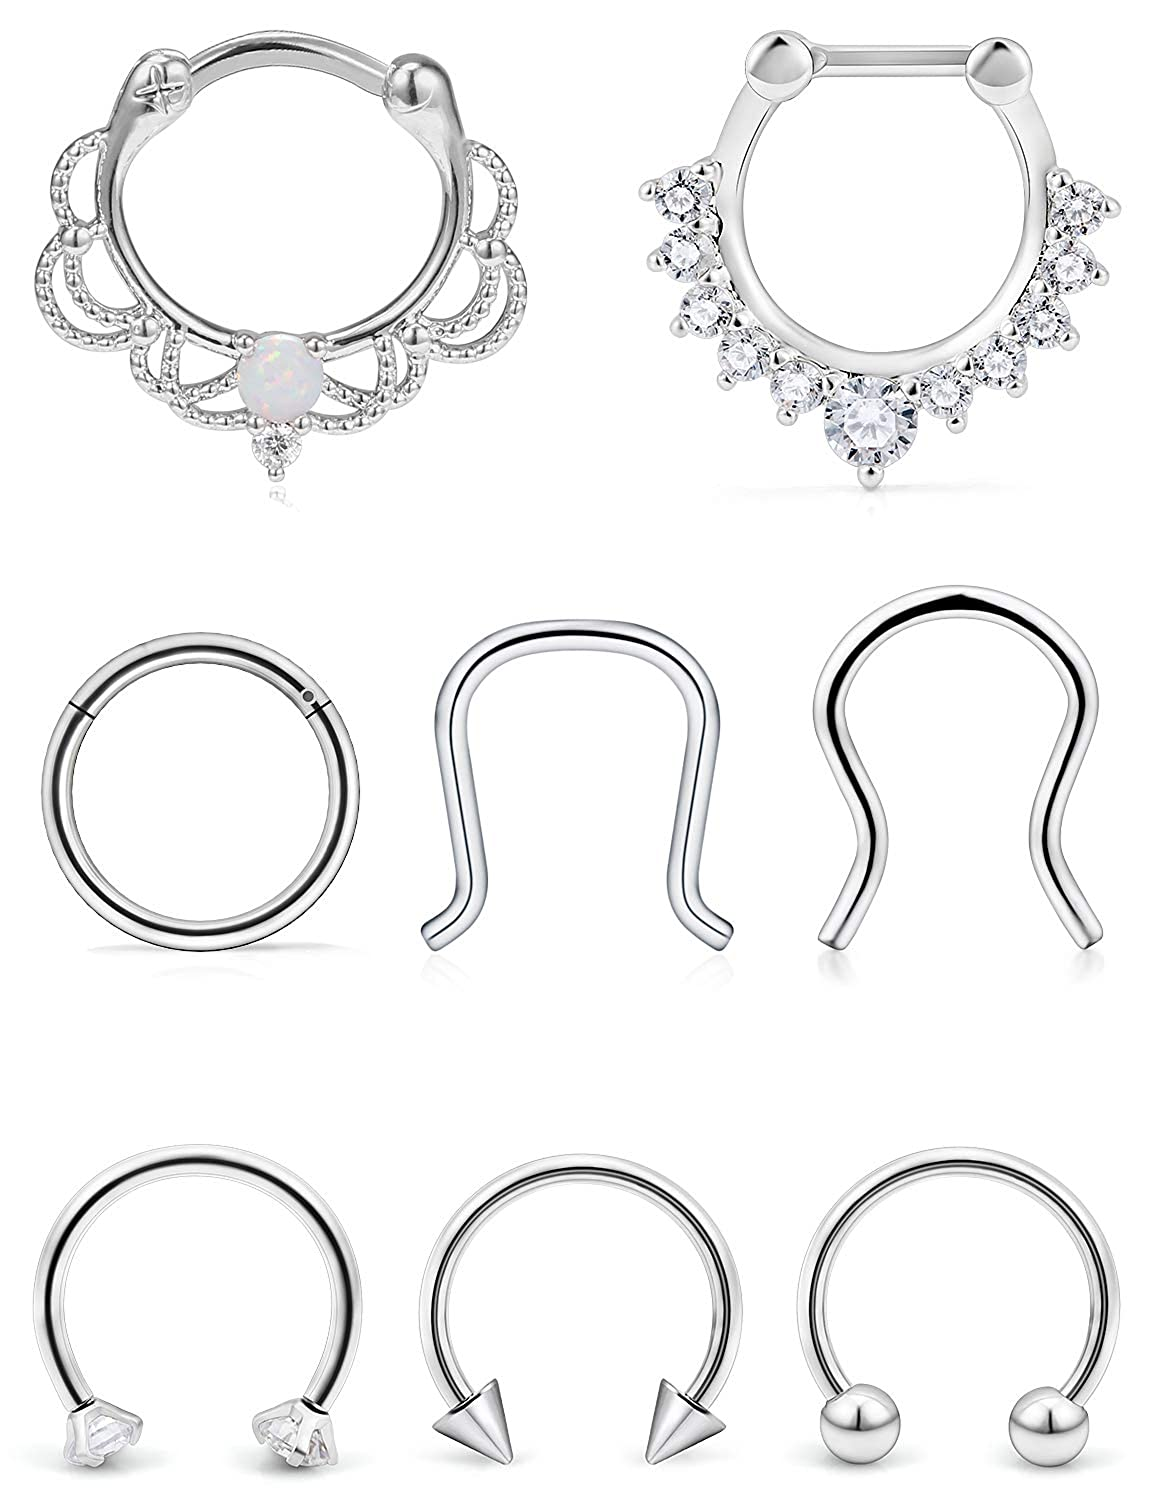 SCERRING 16G Septum Jewelry Stainless Steel Hinged Seamless Septum Nose Hoop Ring Horseshoe Rings Cartilage Daith Tragus Clicker Retainer Body Piercing Jewelry Opal CZ 8-16PCS